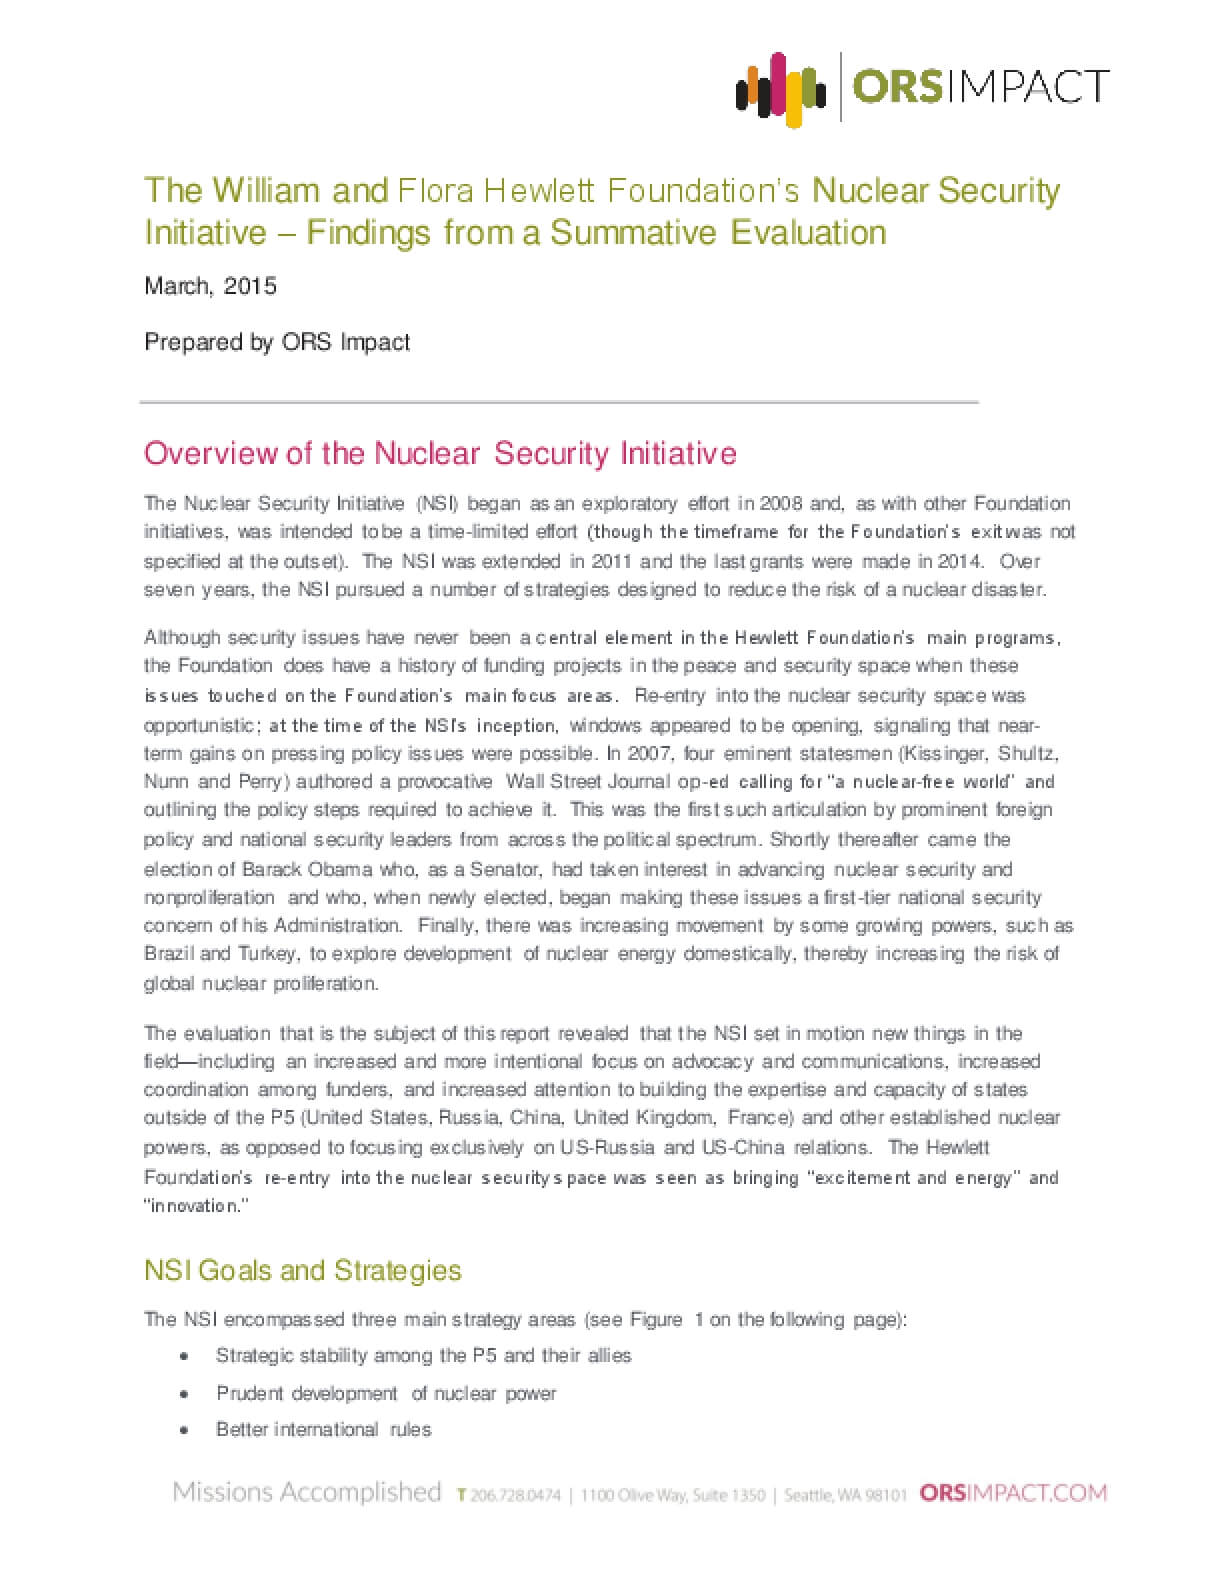 The William and Flora Hewlett Foundation's Nuclear Security Initiative—Findings from a Summative Evaluation